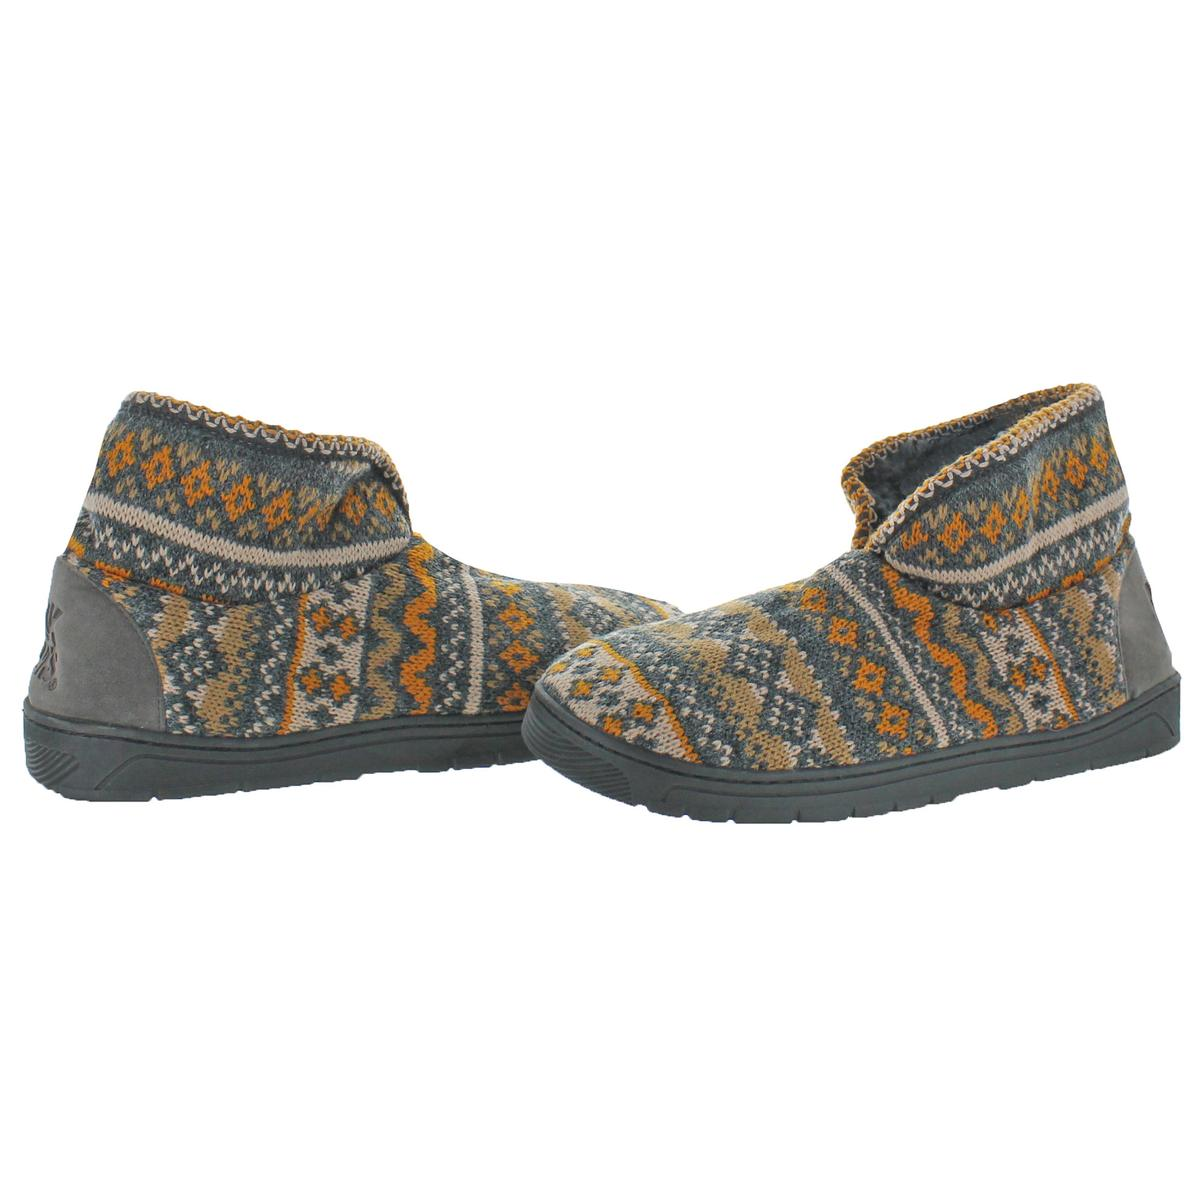 Mukluks-Men-039-s-Mark-Sweater-Knit-Furpa-Ankle-Bootie-House-Slippers thumbnail 6